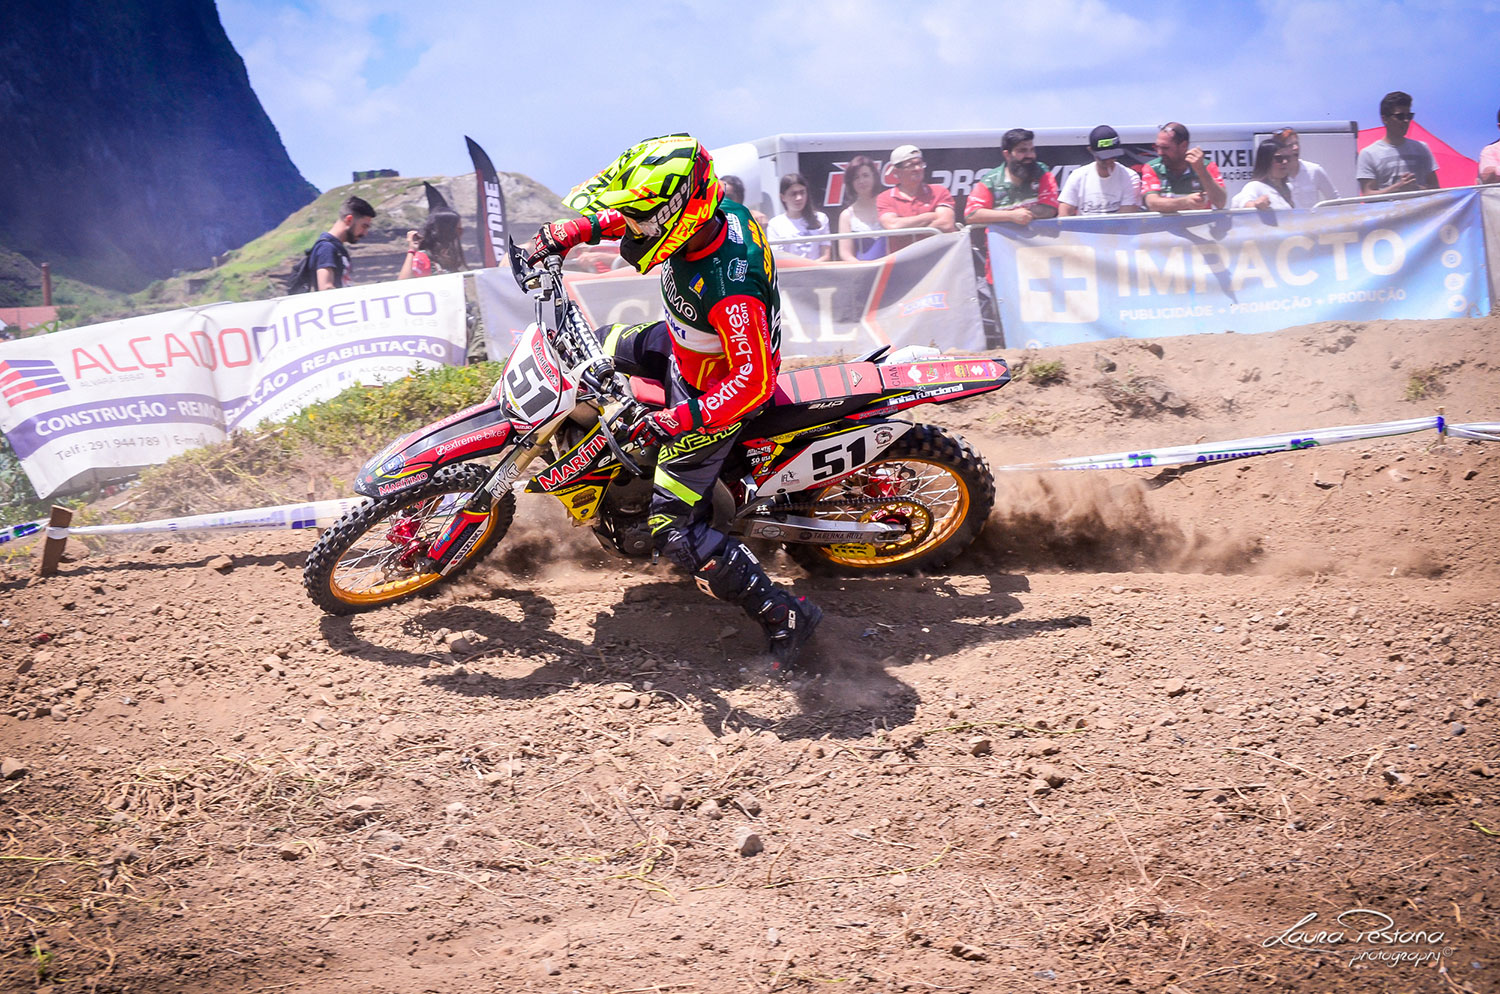 A rider making a berm on the track